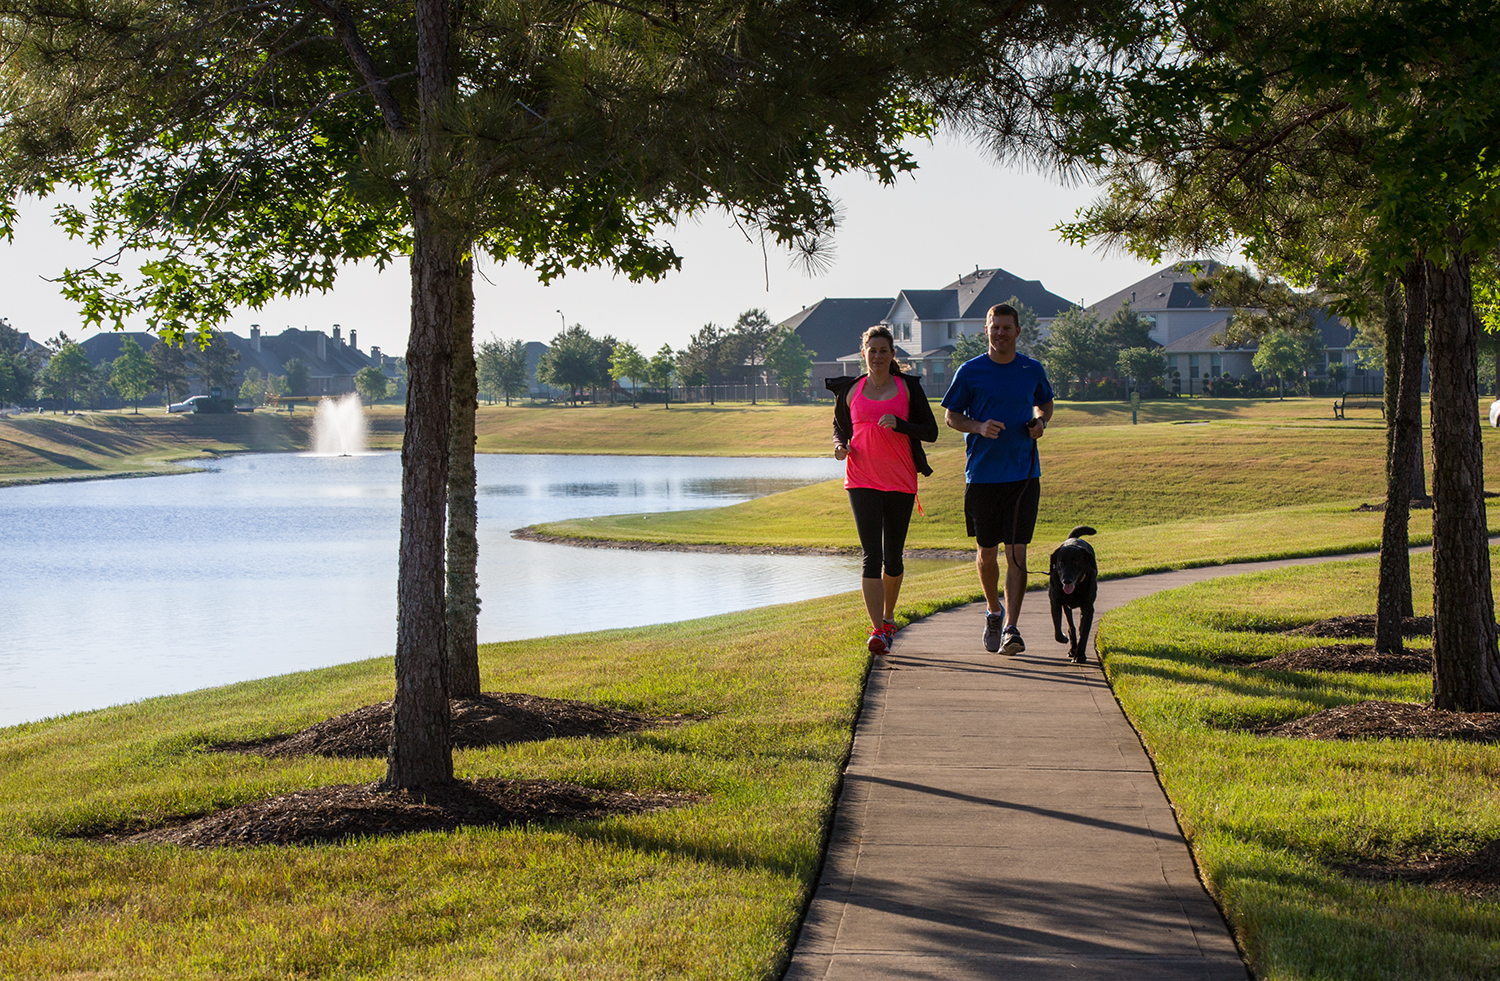 Summer Lakes and Summer Park are near the Brazos Town Center and feature amenities including walking trails, lakes, clubhouse, resort-style pool and more.